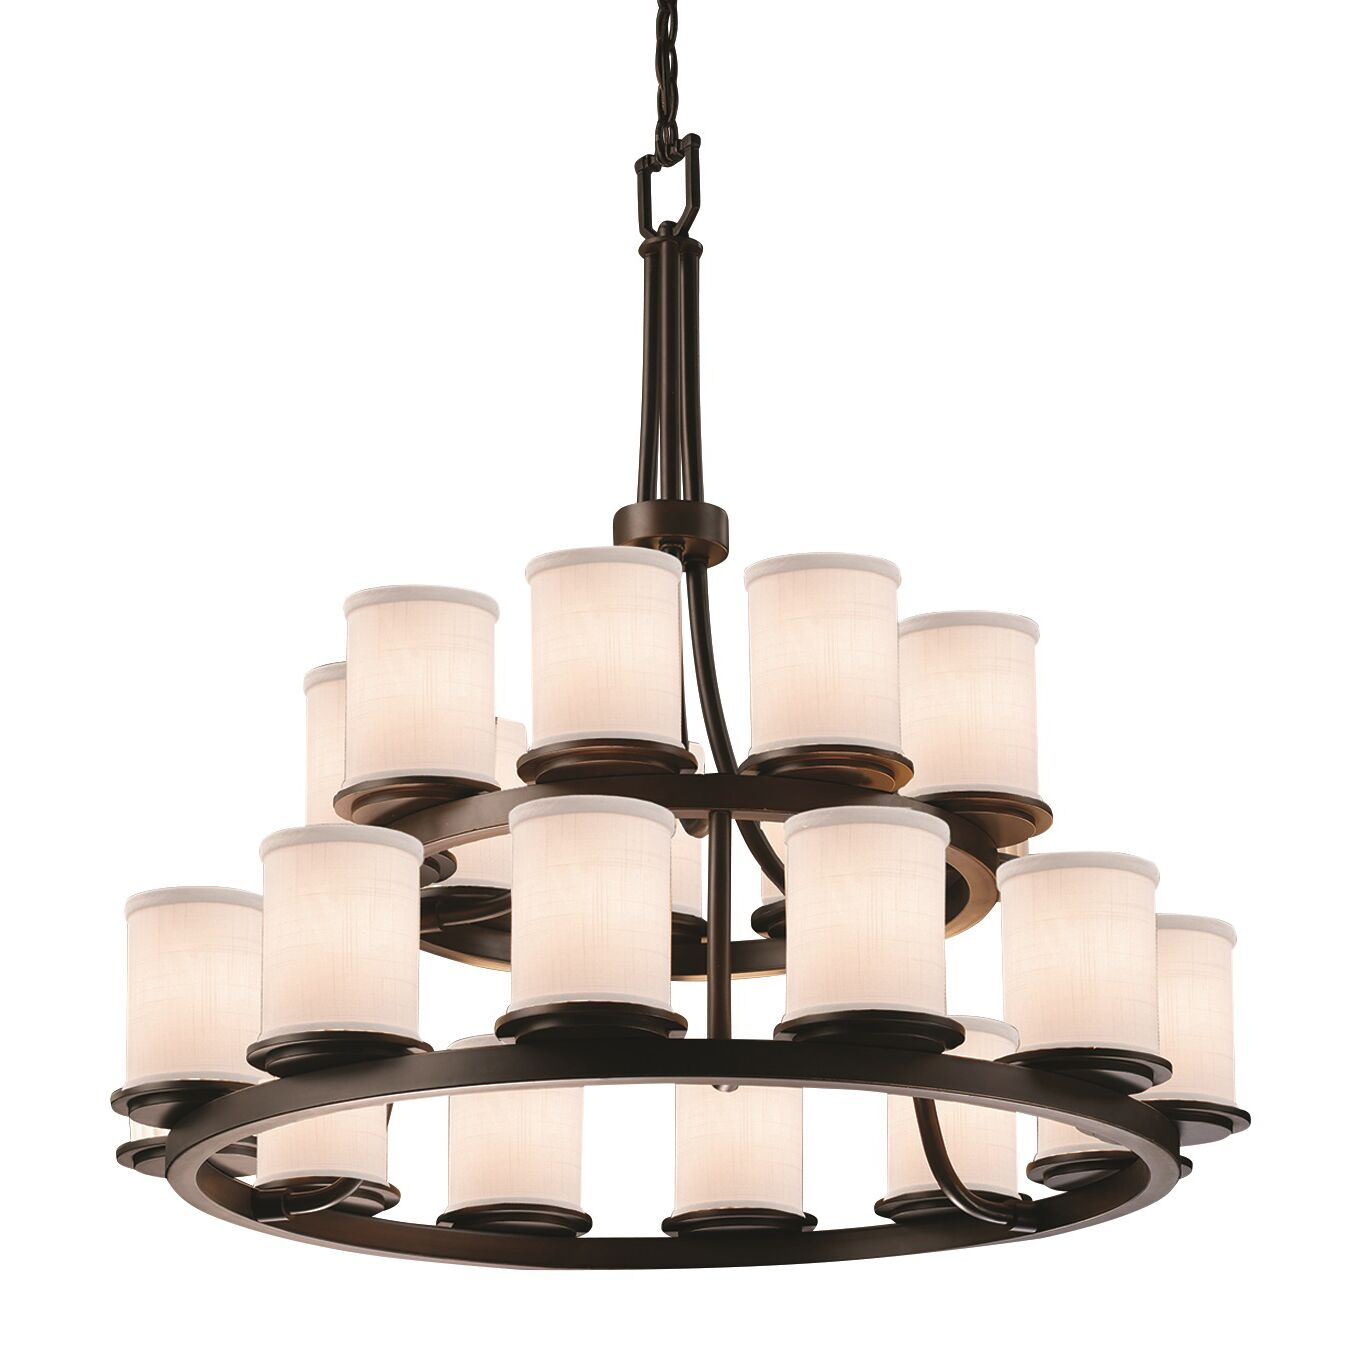 Red Hook 21 Light Cylinder w/ Flat Rim Drum Chandelier Shade Color: Cream, Finish: Matte Black